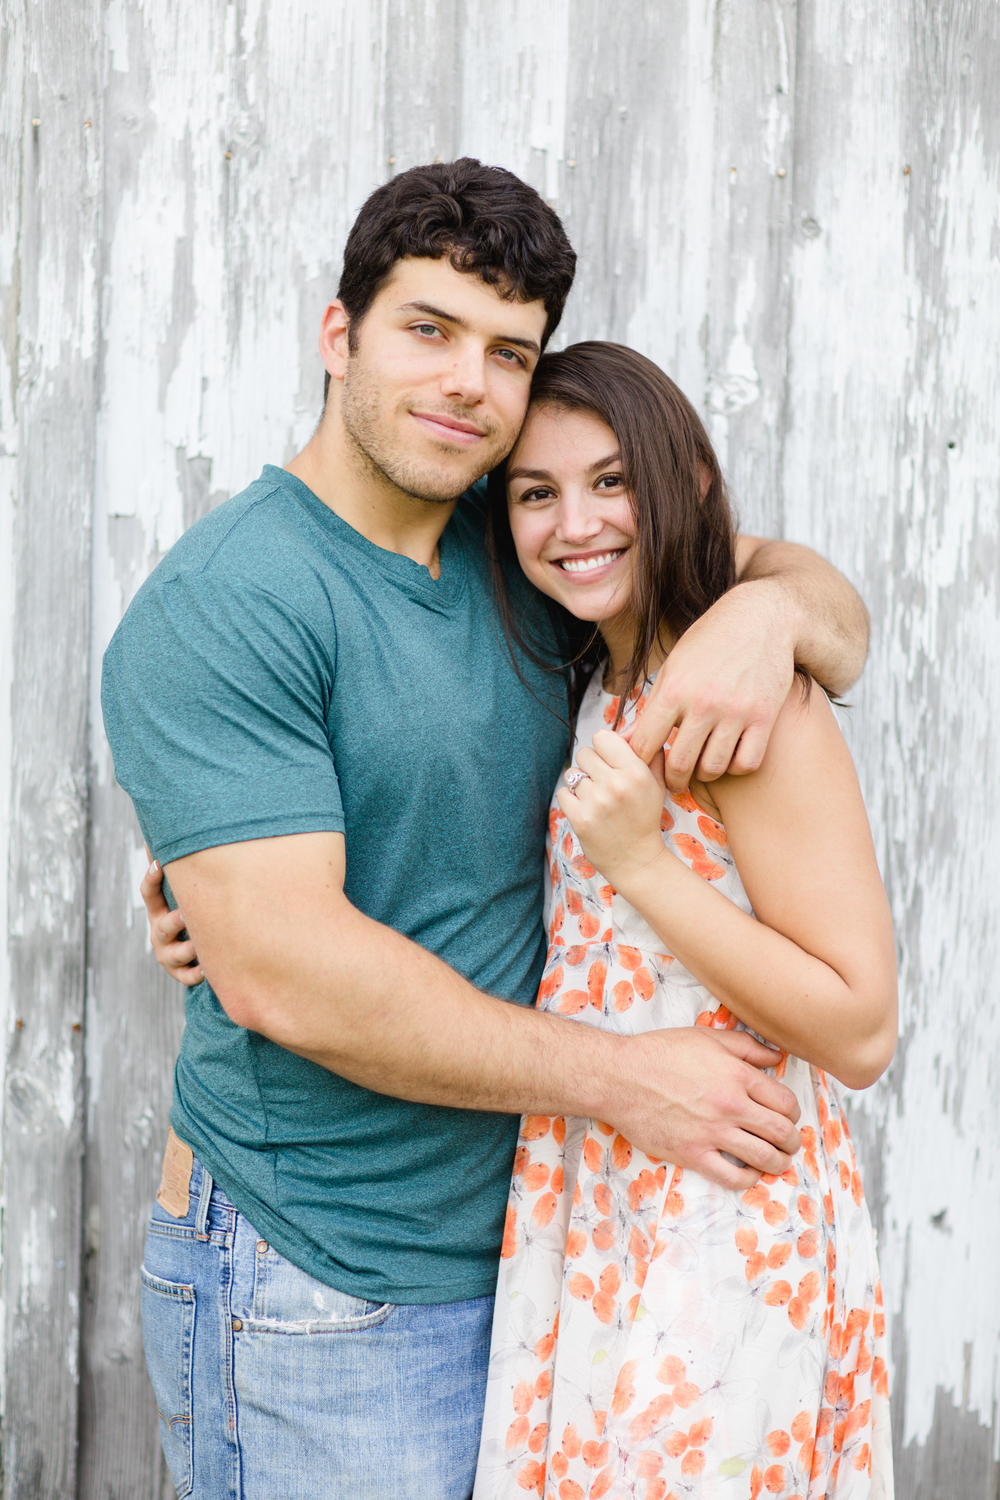 Scranton PA Rustic Romantic Engagement Session Photographers Jordan DeNike_JDP-62.jpg